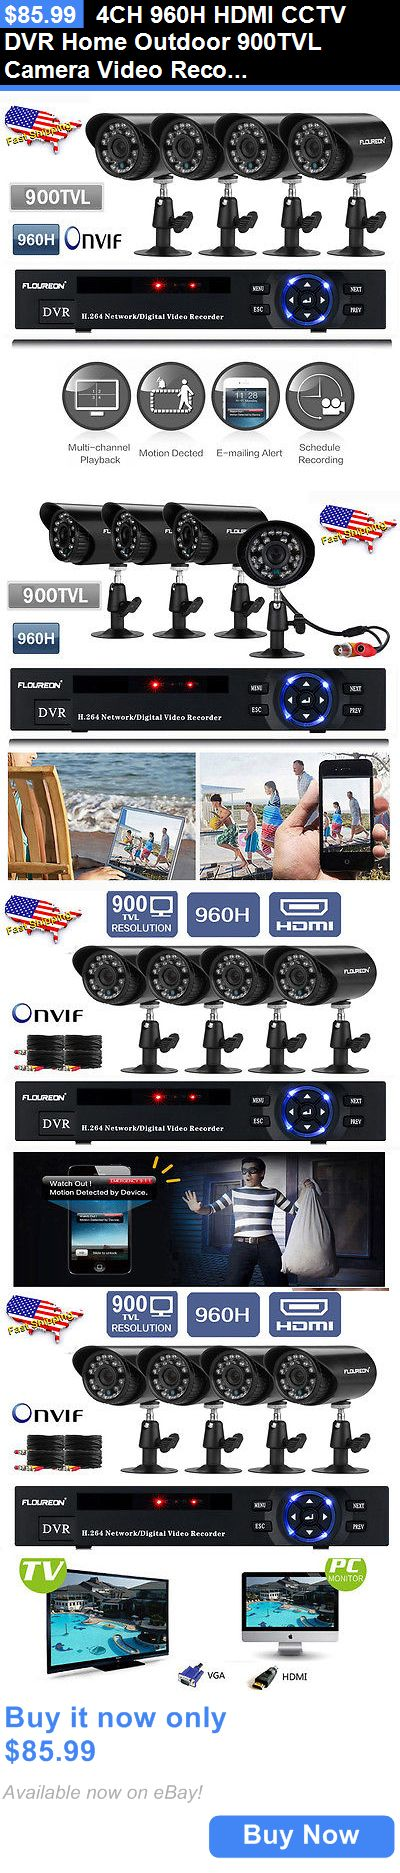 Security Cameras: 4Ch 960H Hdmi Cctv Dvr Home Outdoor 900Tvl Camera Video Recorder Security System BUY IT NOW ONLY: $85.99